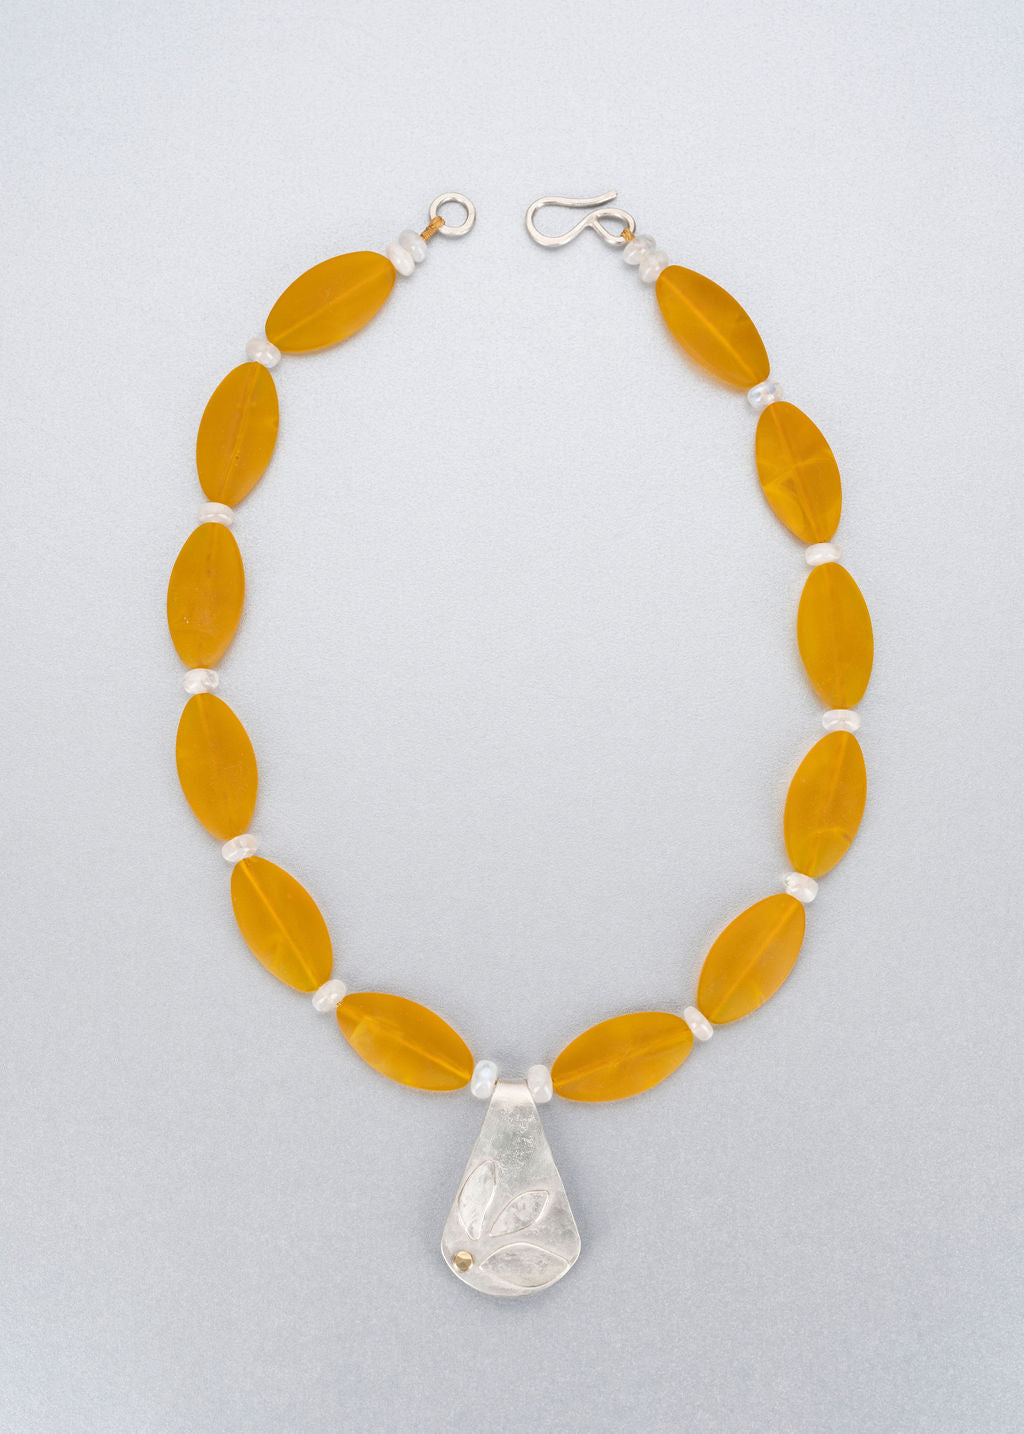 Sea glass, moonstone, silver and 18 ct gold necklace